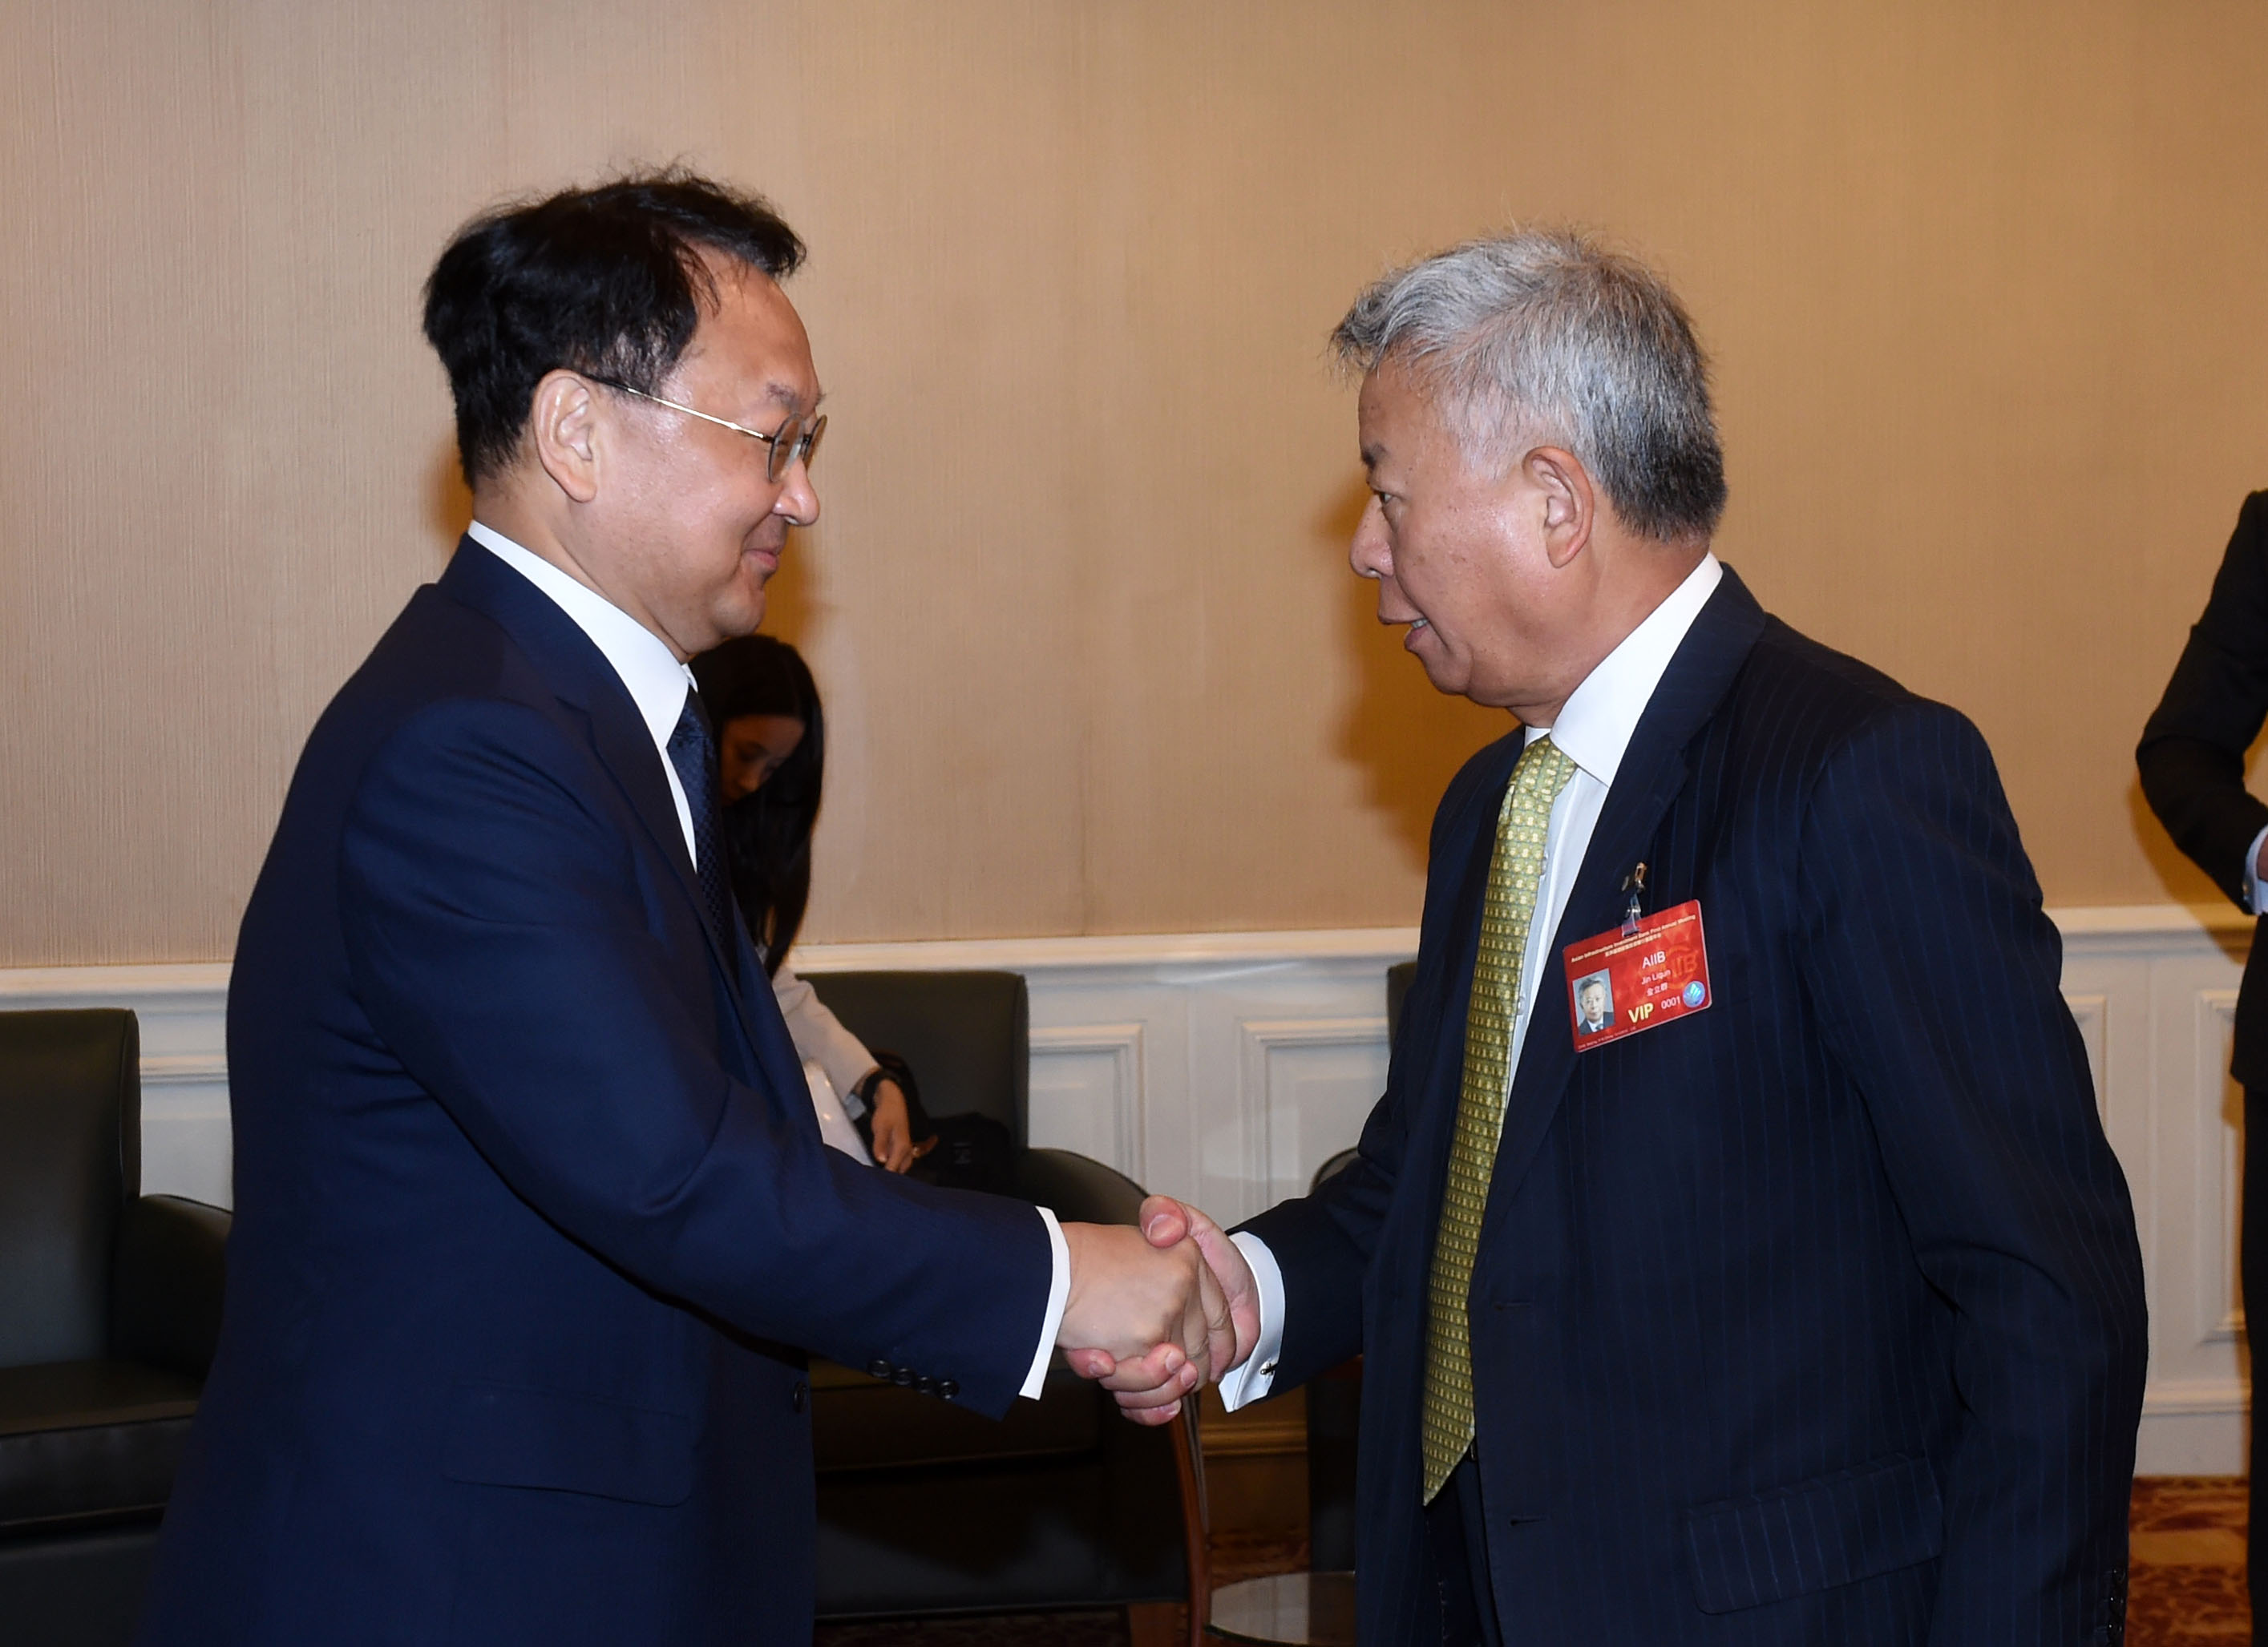 Deputy Prime Minister Yoo meets with AIIB President Jin Liqun in Beijing